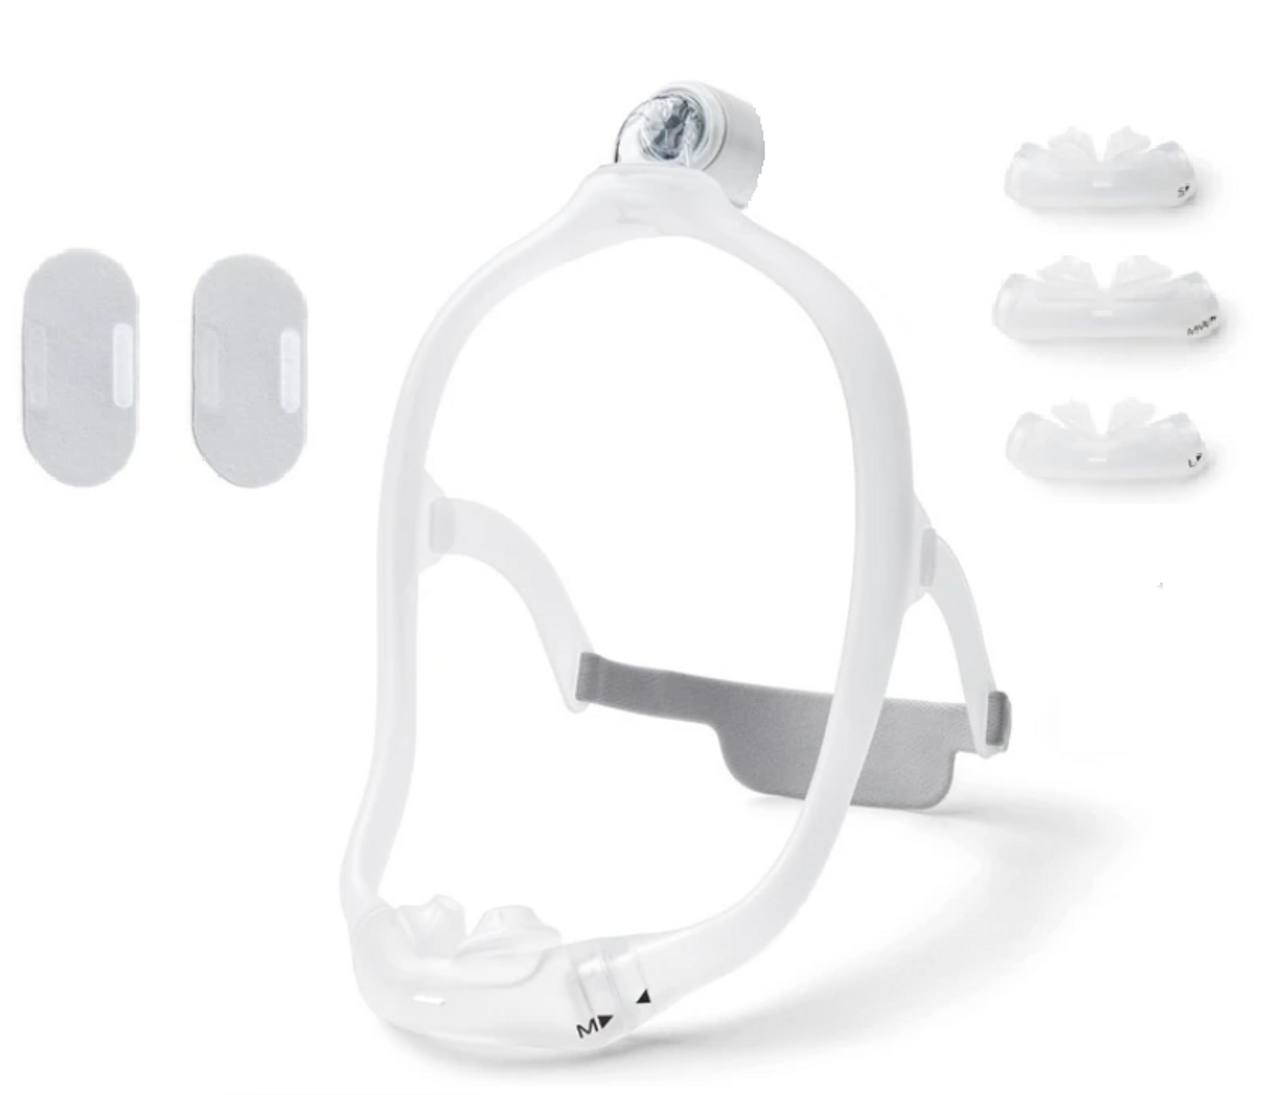 Philips Respironics Dreamwear Silicone Pillows mask ( 2 different Frames Sizes)- Special get a free cushion when you Buy